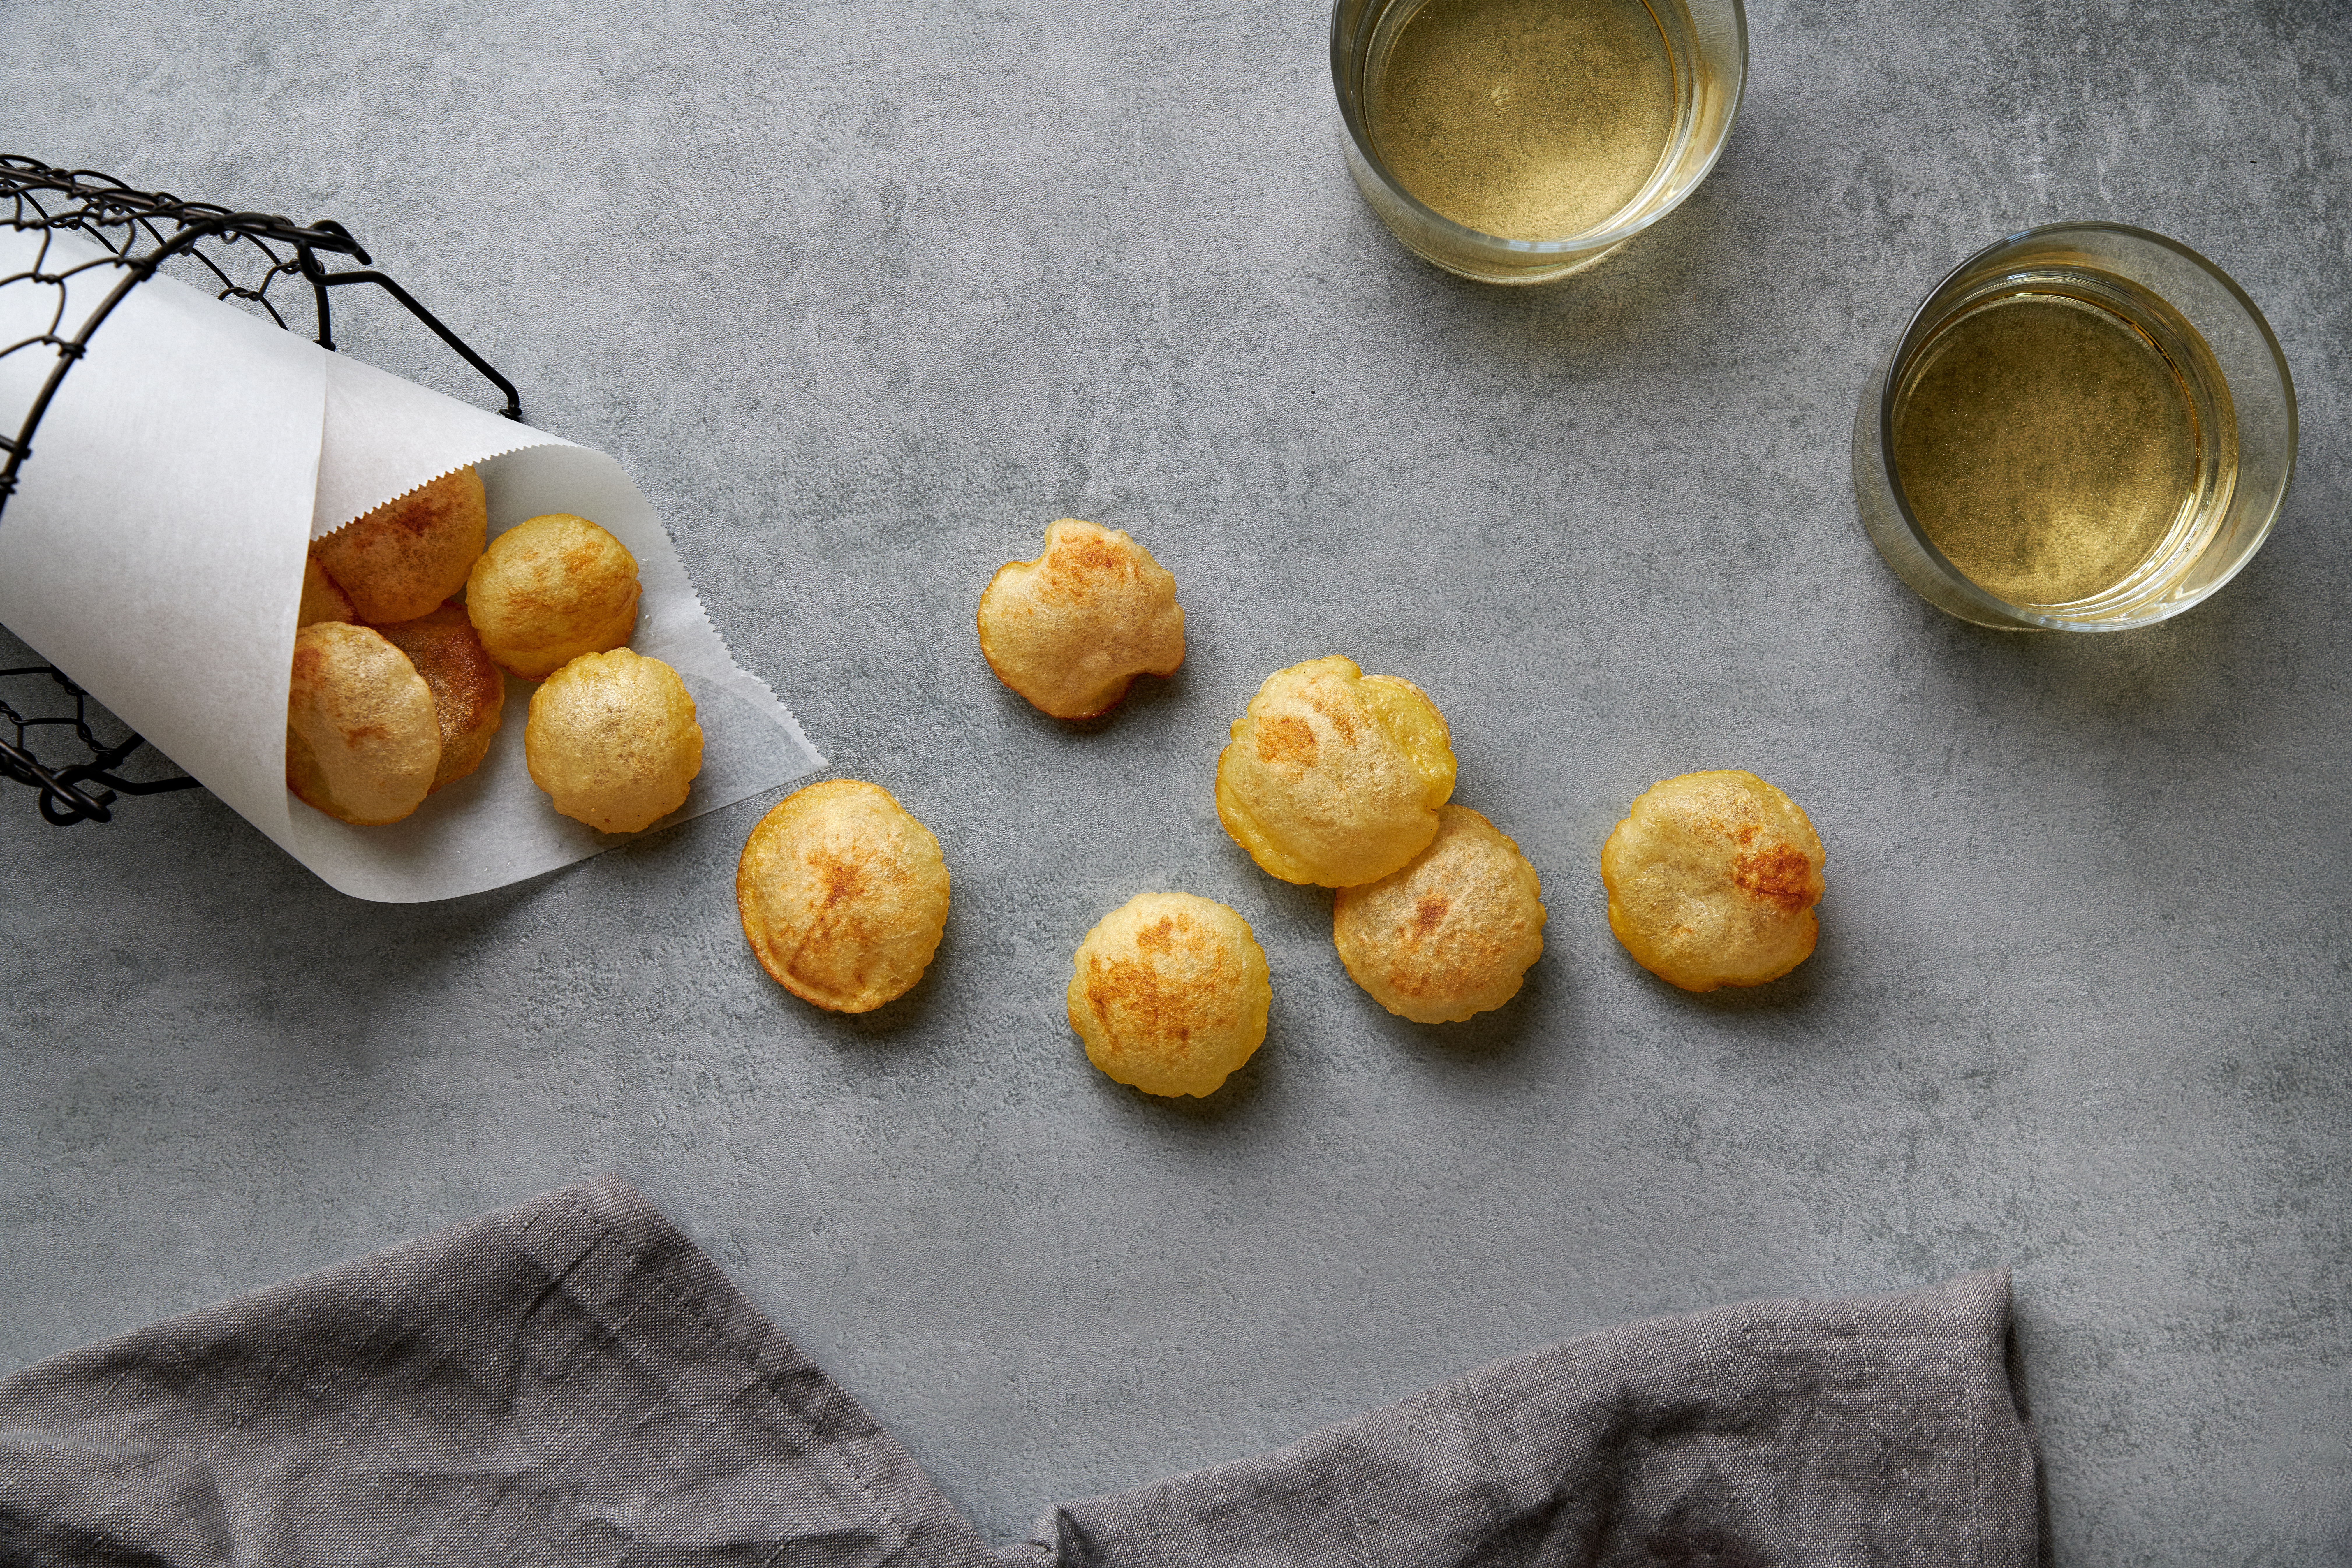 Puffy potato pommes soufflees spilling out of a paper cone on a table